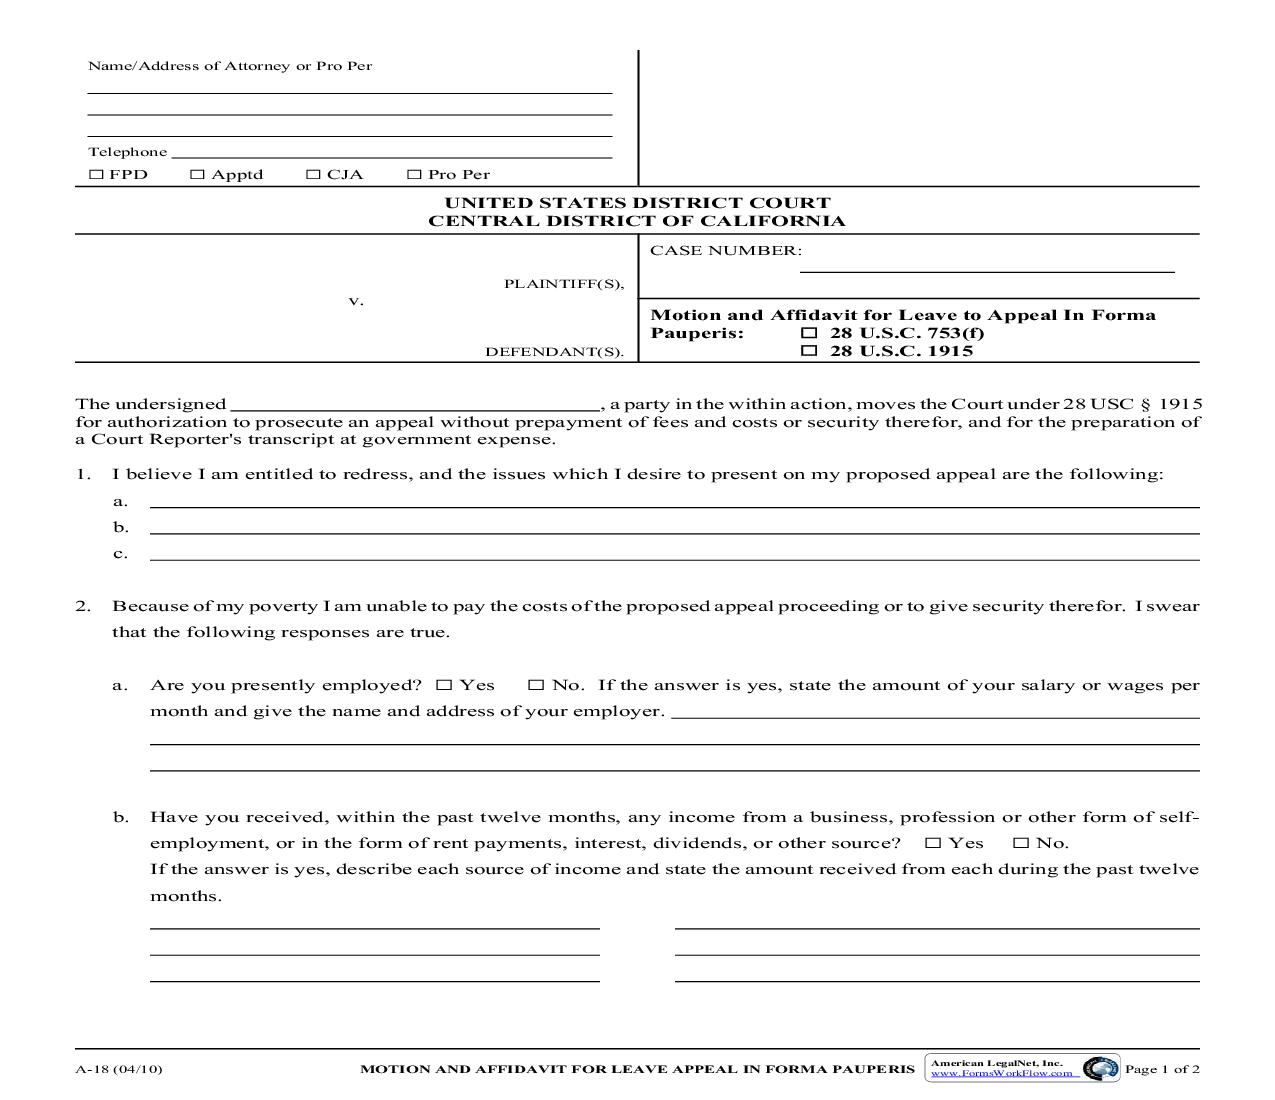 Motion And Affidavit For Leave To Appeal In Forma Pauperis {A-18} | Pdf Fpdf Doc Docx | California